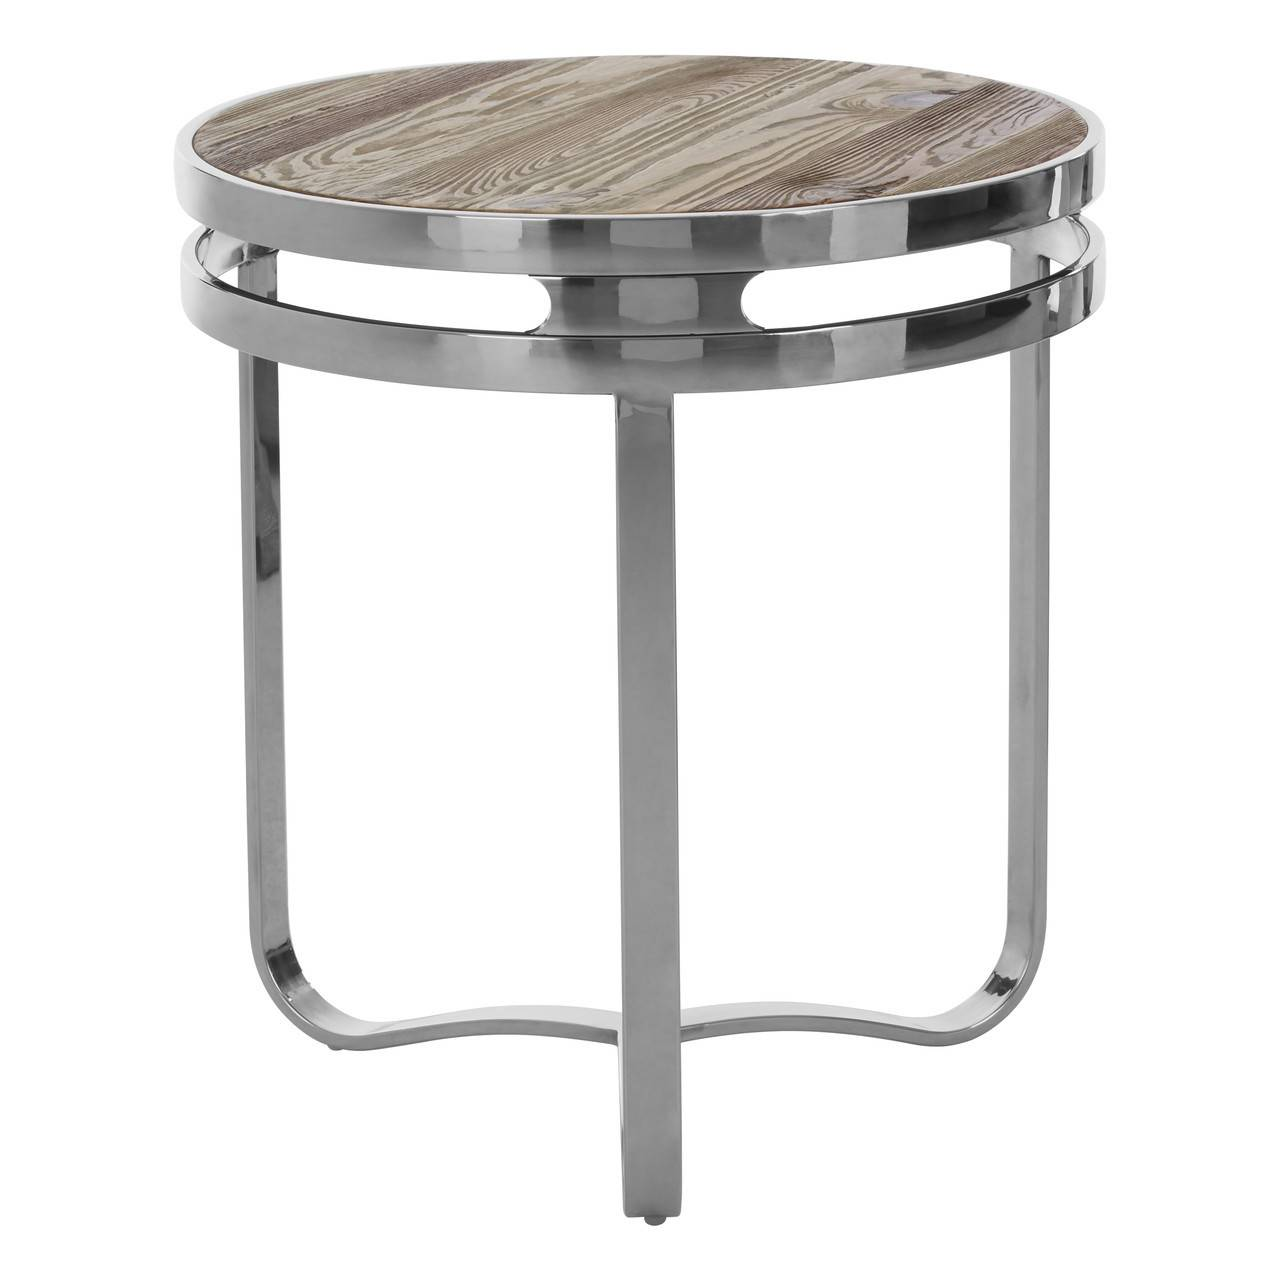 Plymouth Round Side Table   Natural Pine Wood